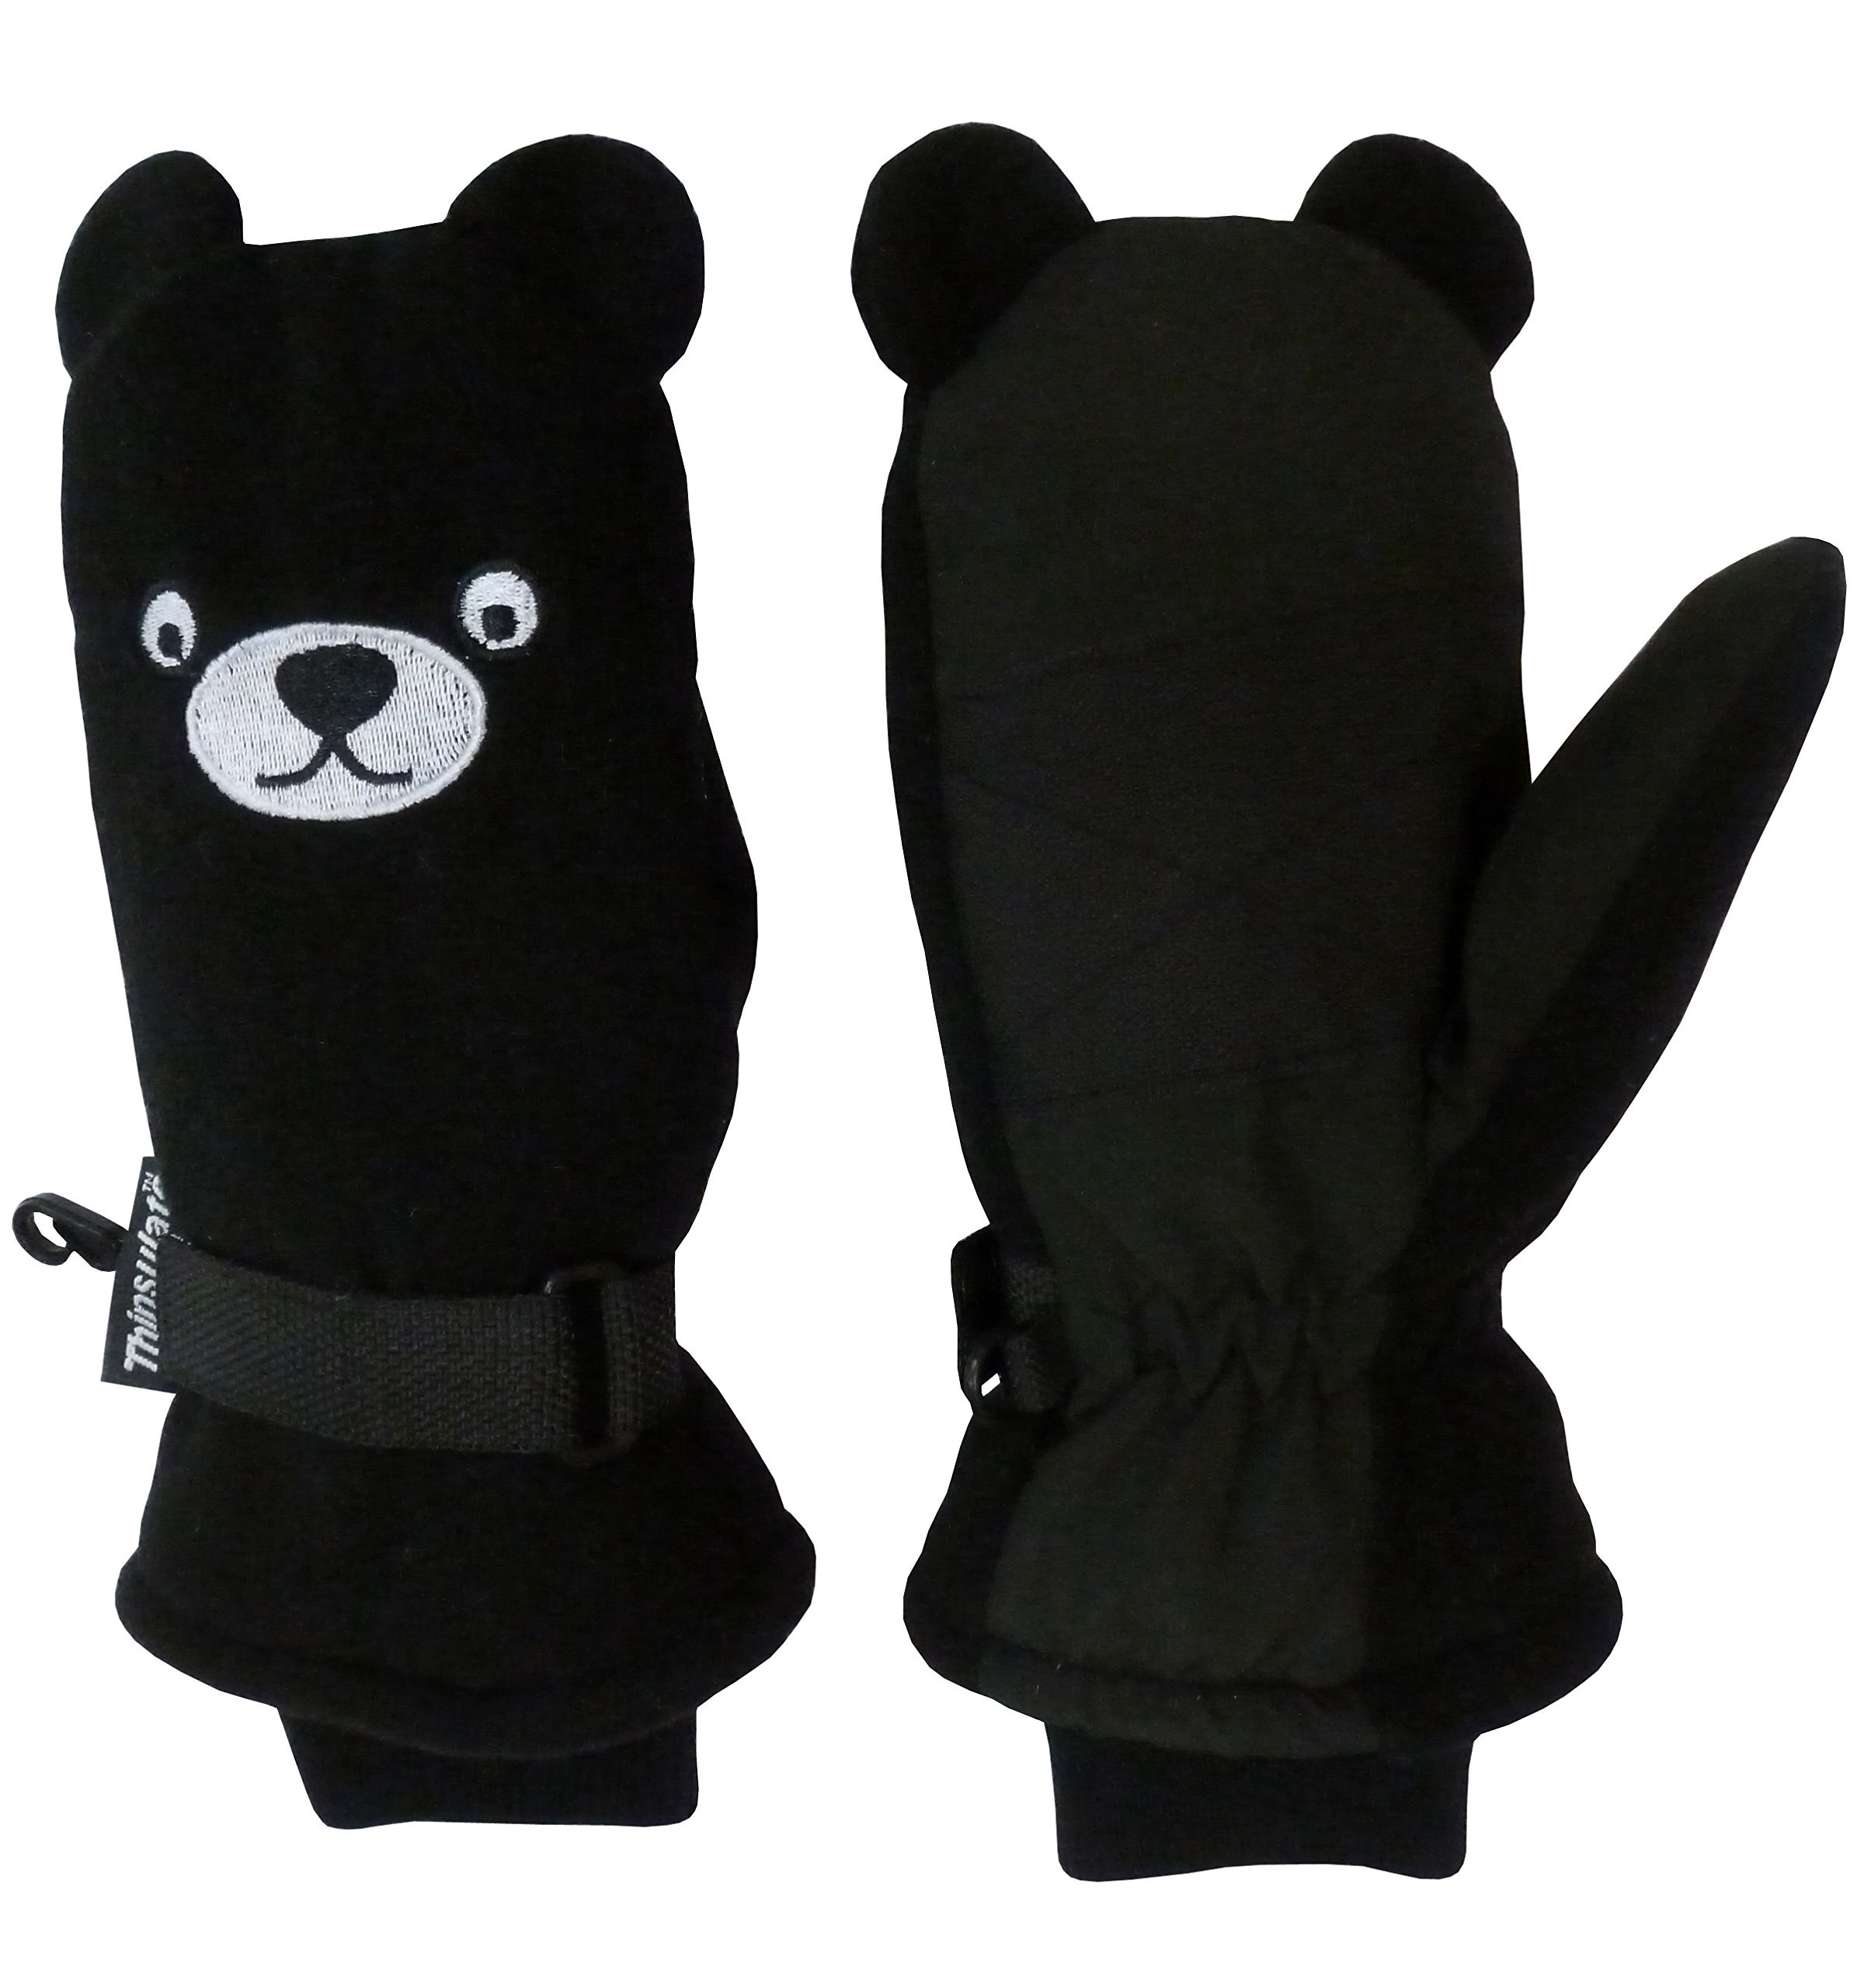 N 'ice Caps Little Kids Cute Bear Face Thinsulate guantes de invierno impermeables